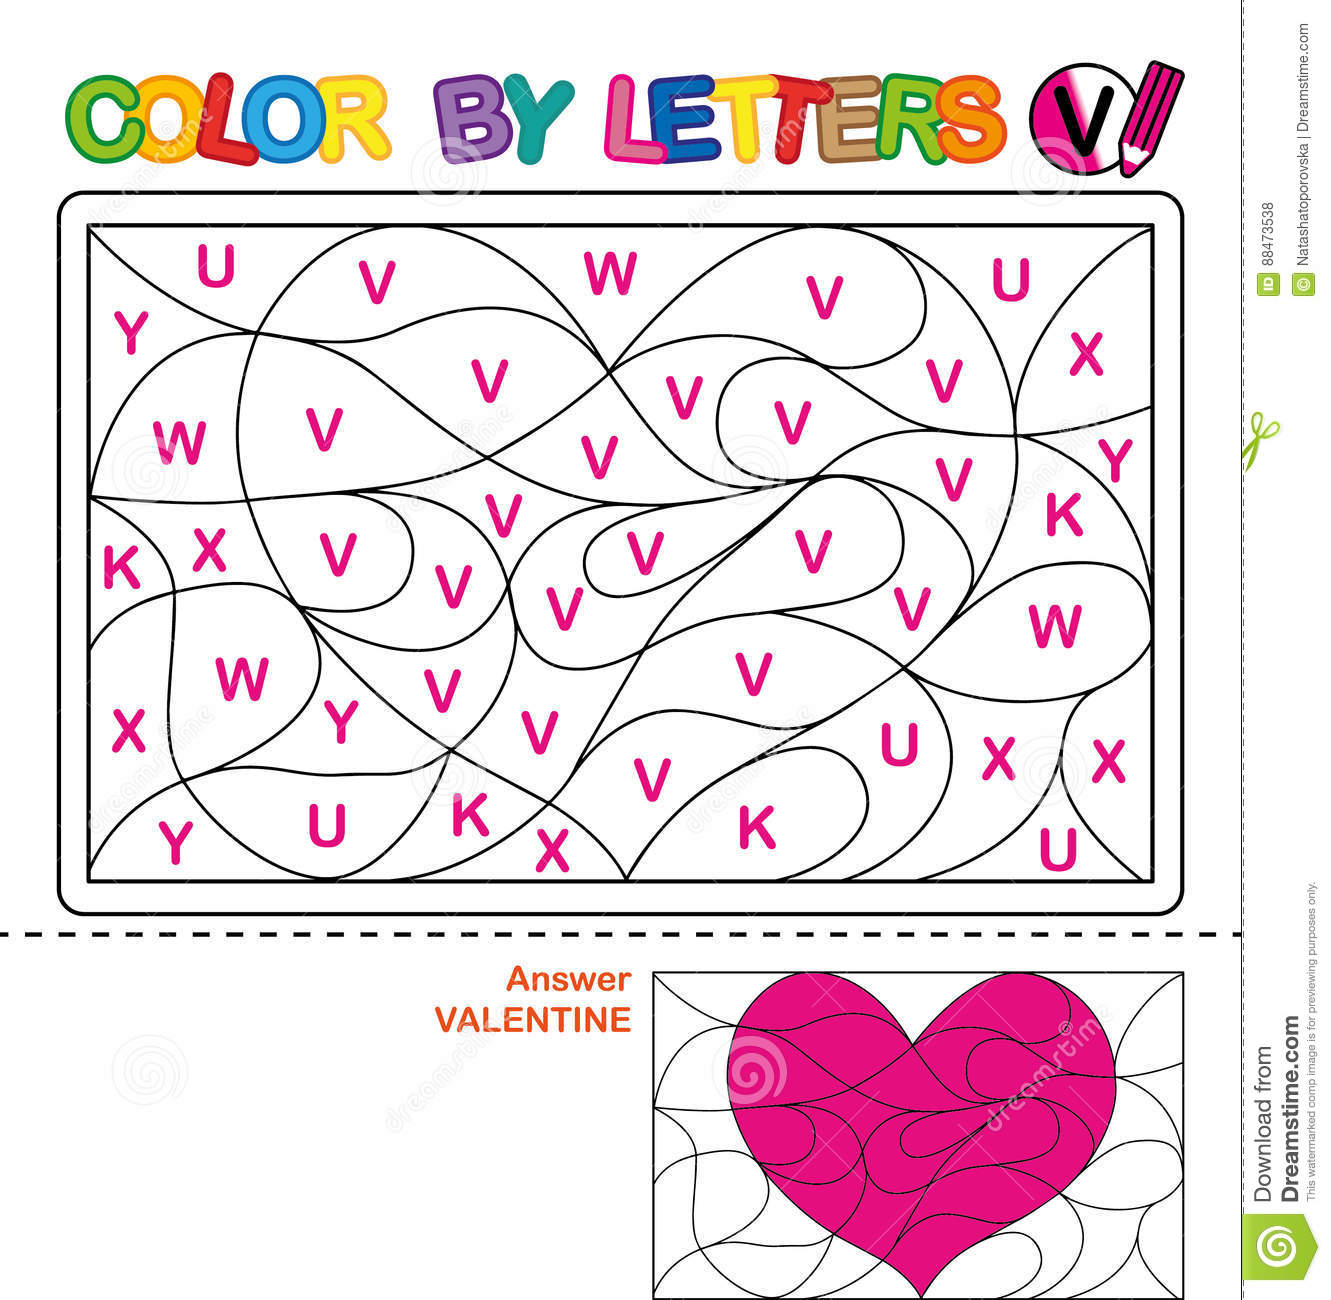 Color By Letter Puzzle For Children Valentine Download Preview